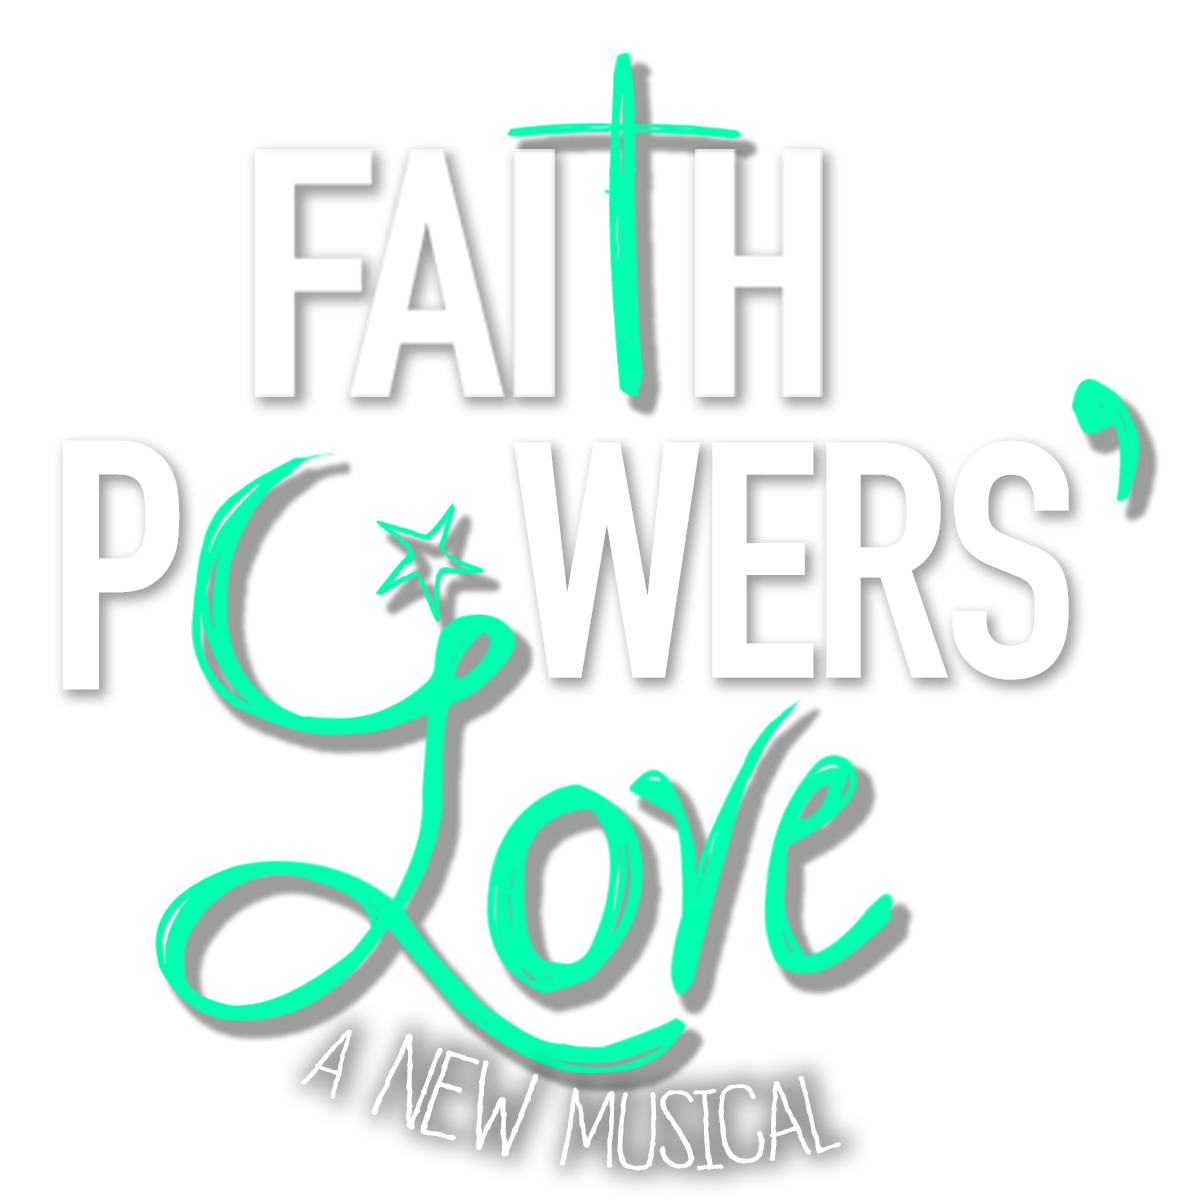 FAITH POWERS' LOVE